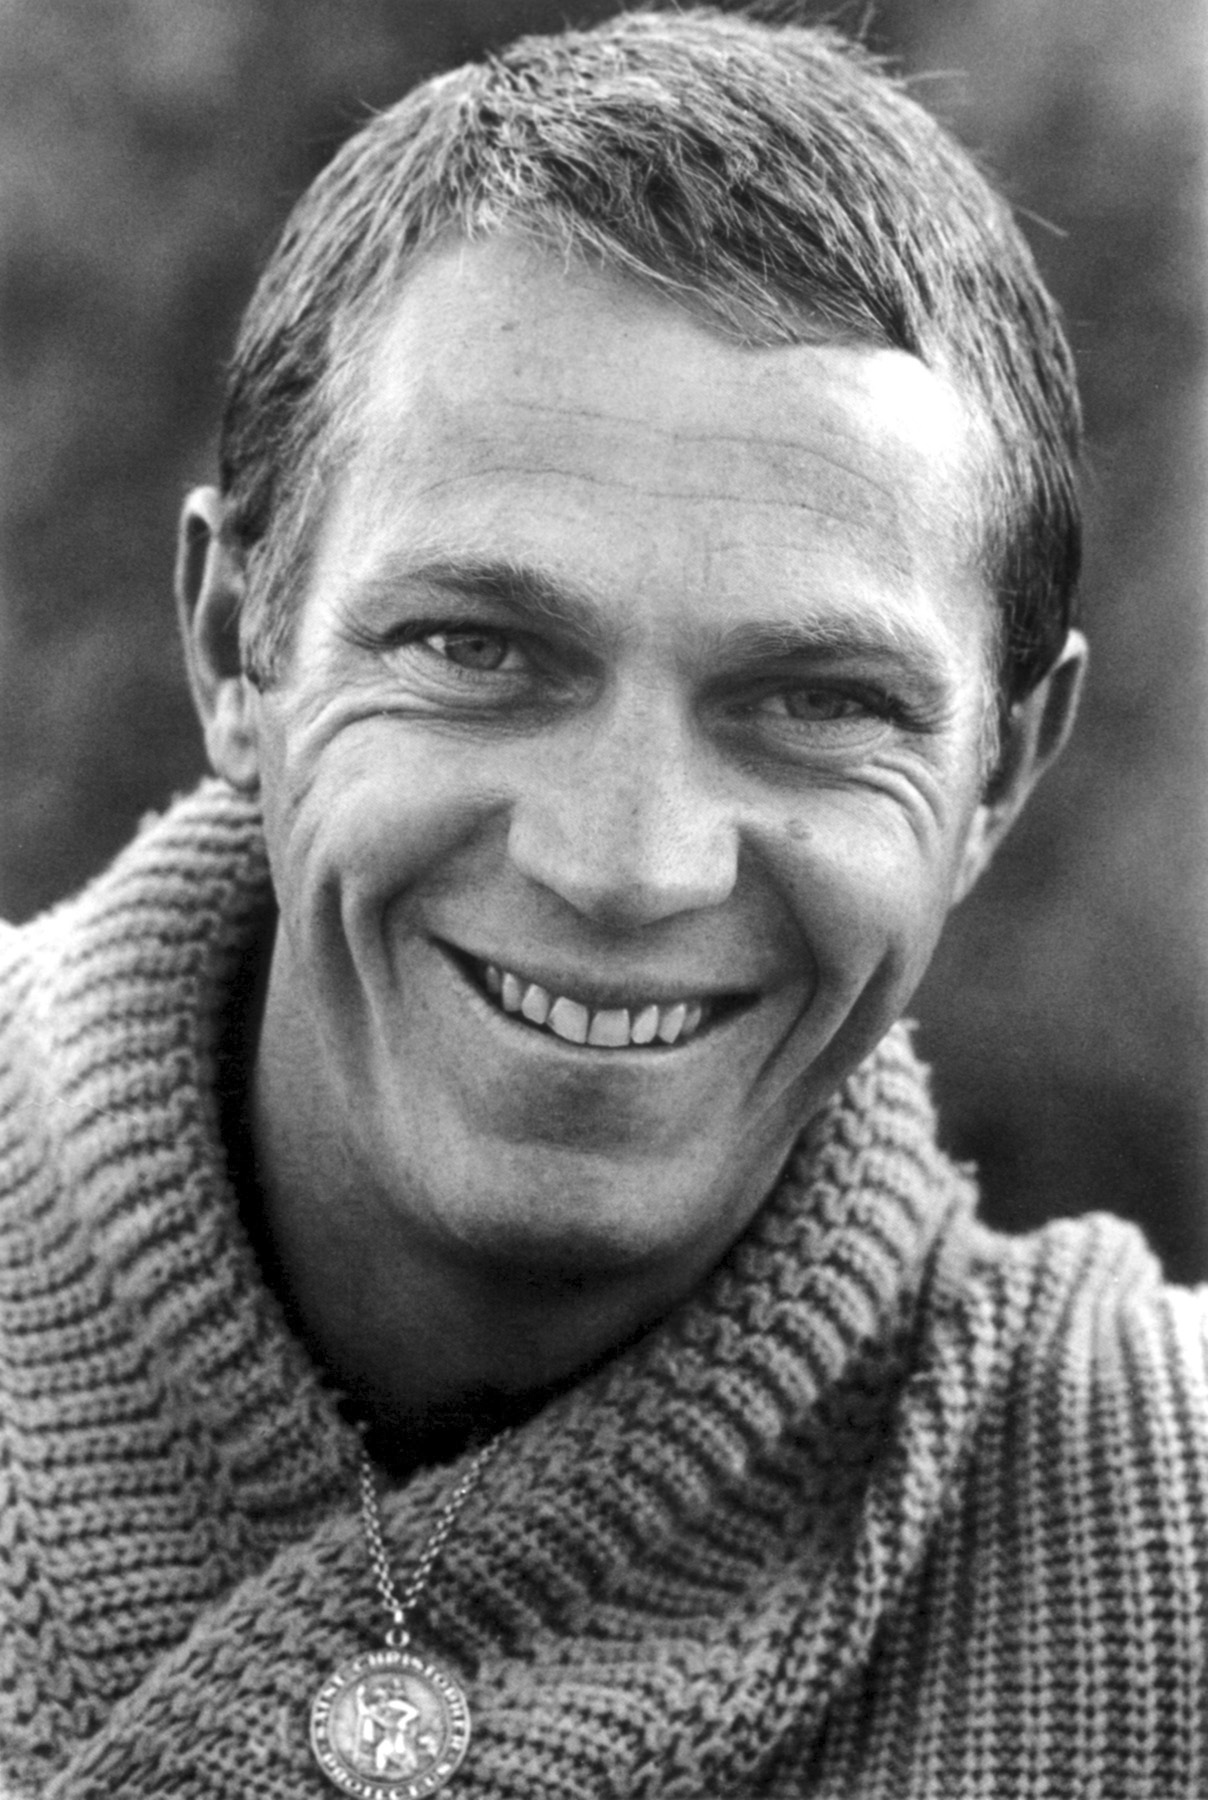 steve mcqueen actor. Black Bedroom Furniture Sets. Home Design Ideas